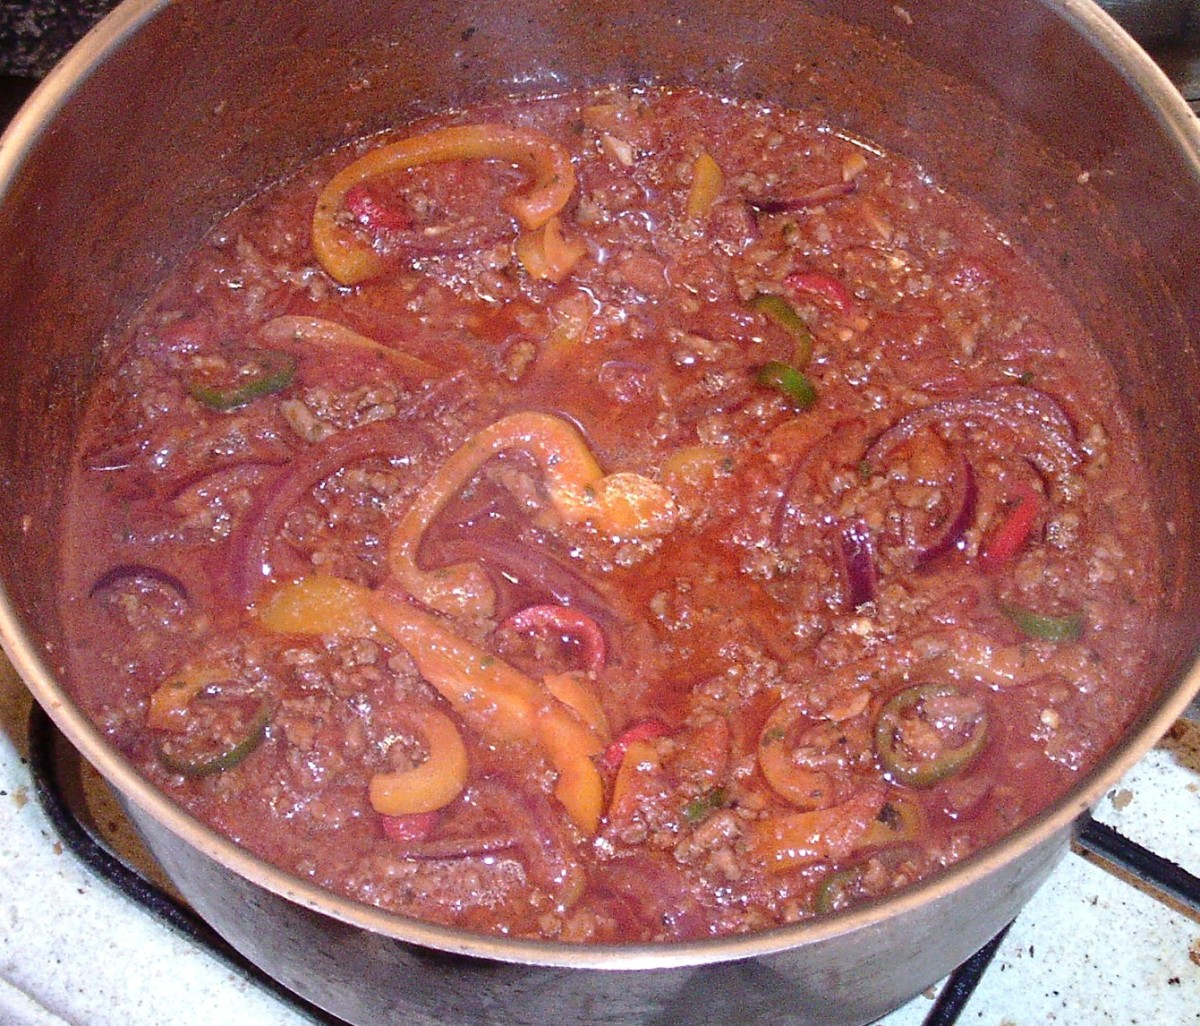 Spicy beef is brought to a simmer